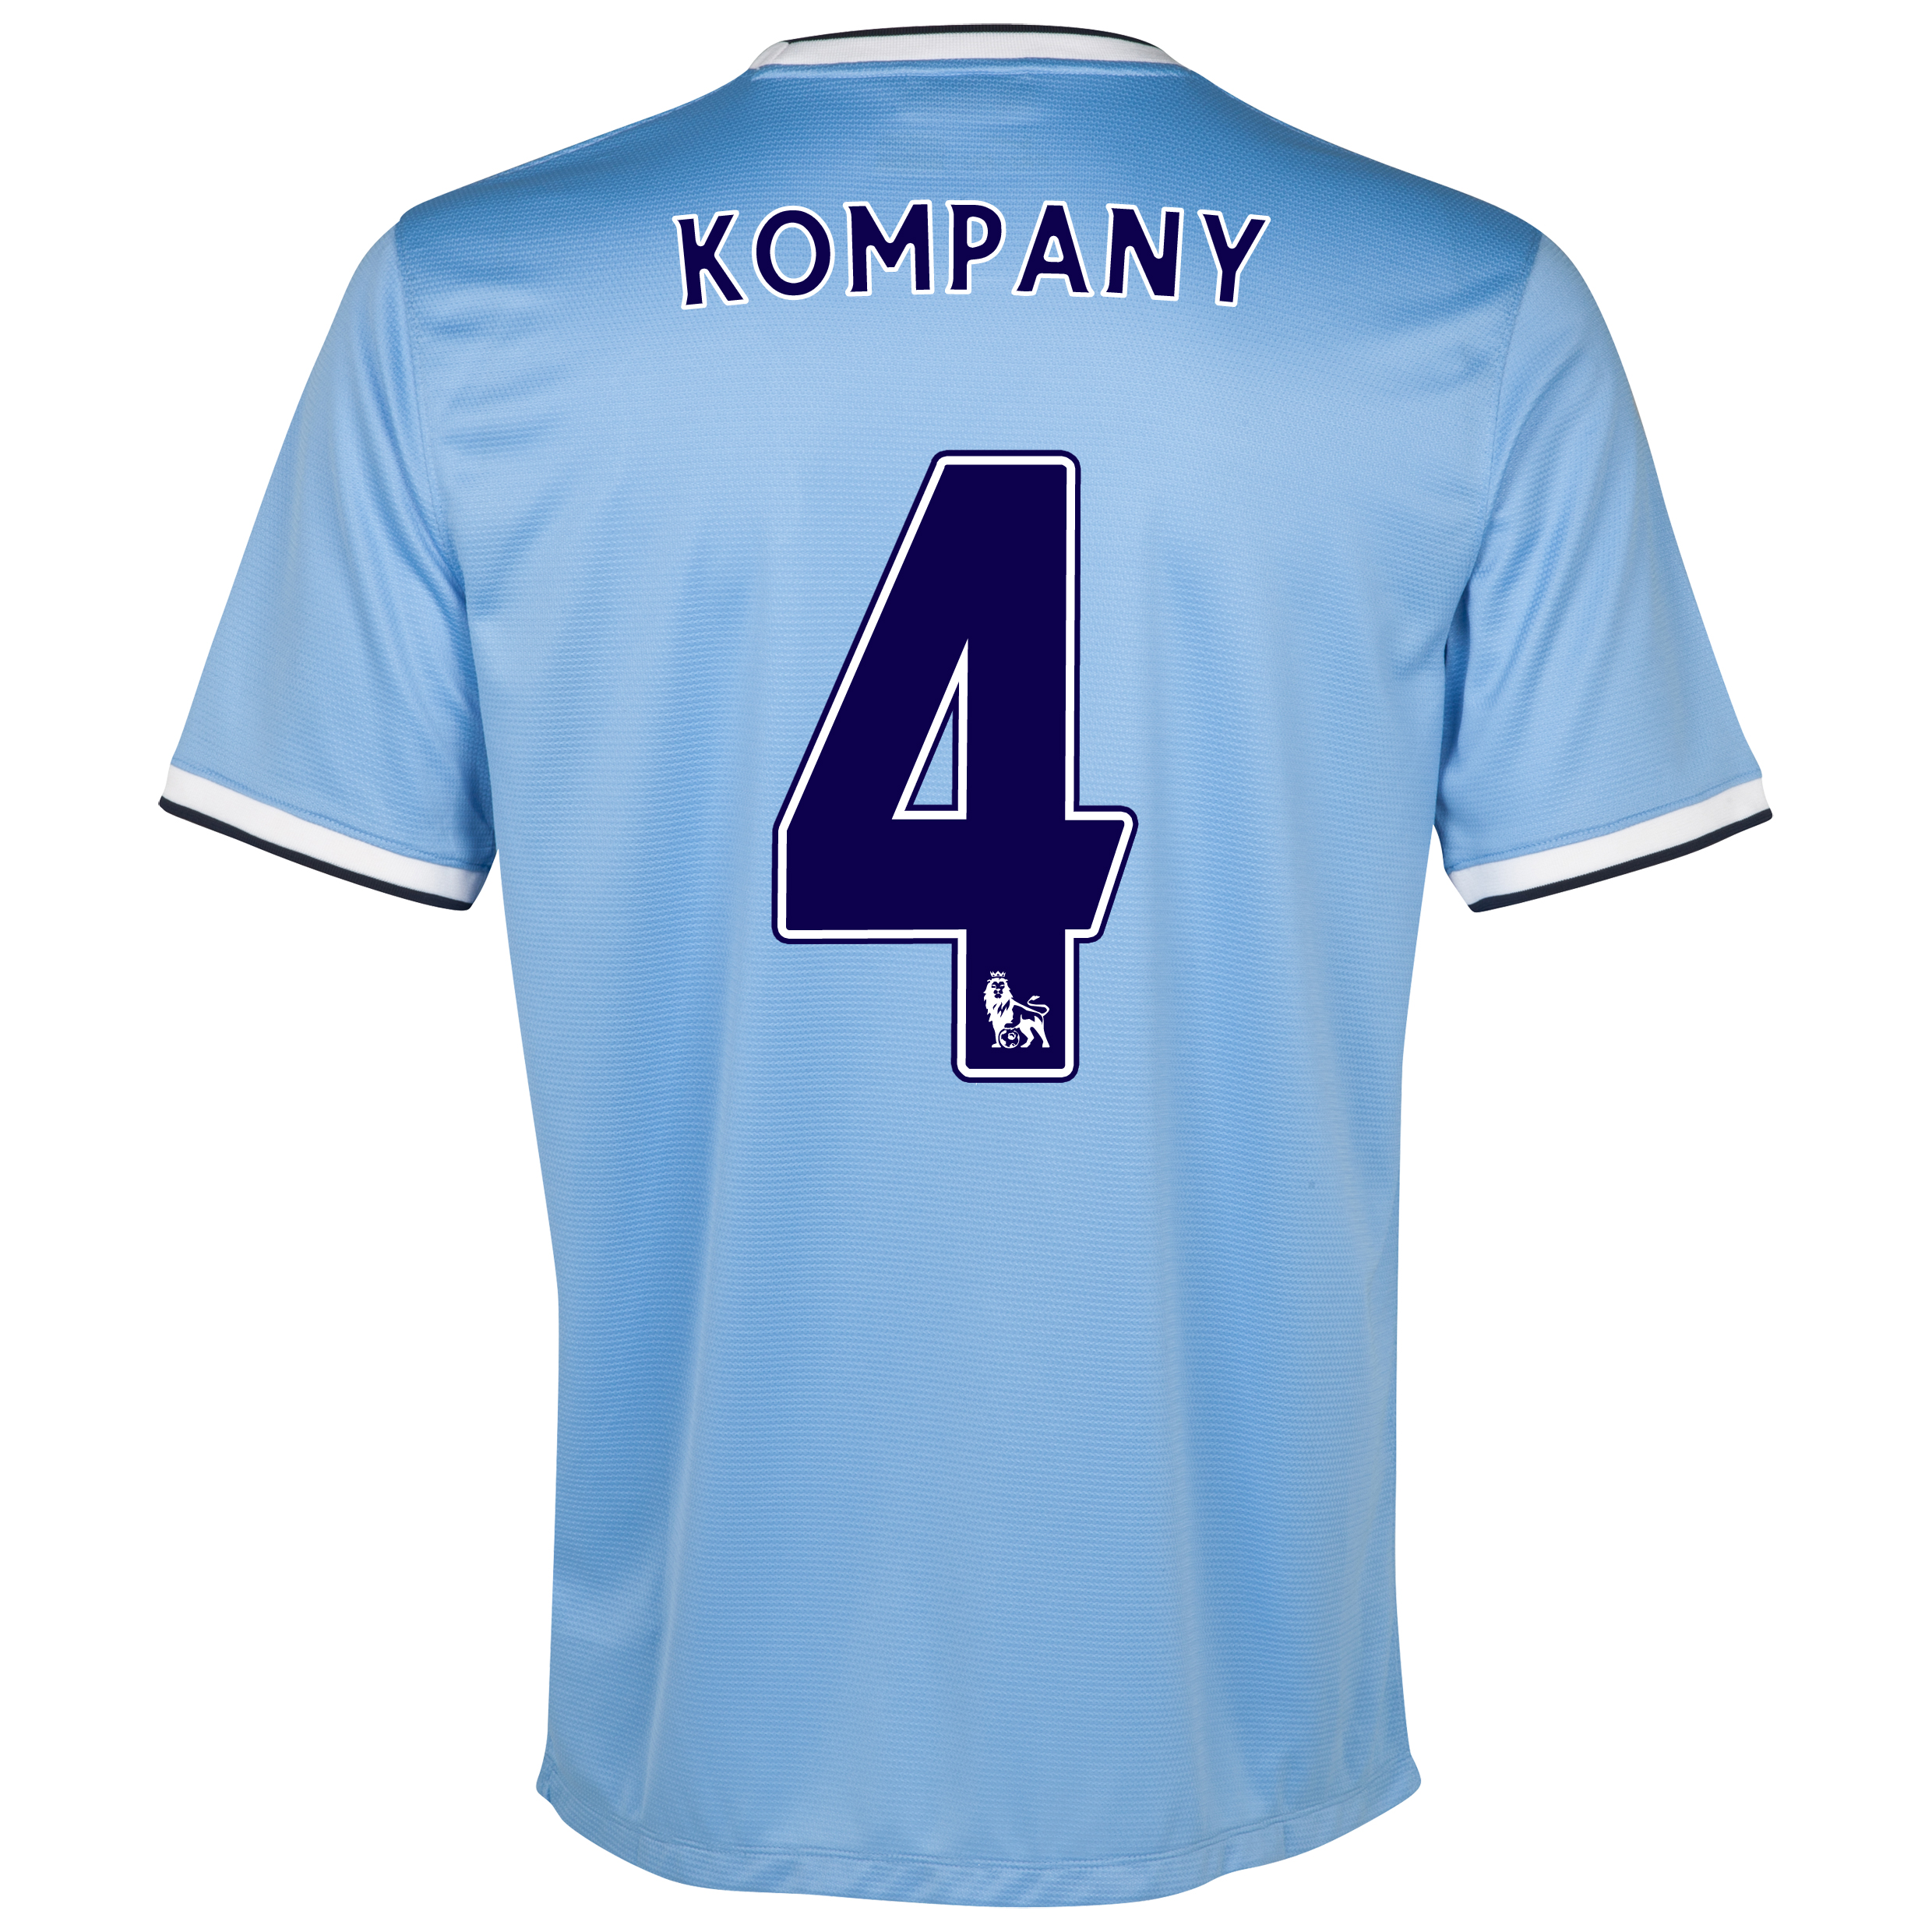 Manchester City Home Shirt 2013/14 with Kompany 4 printing